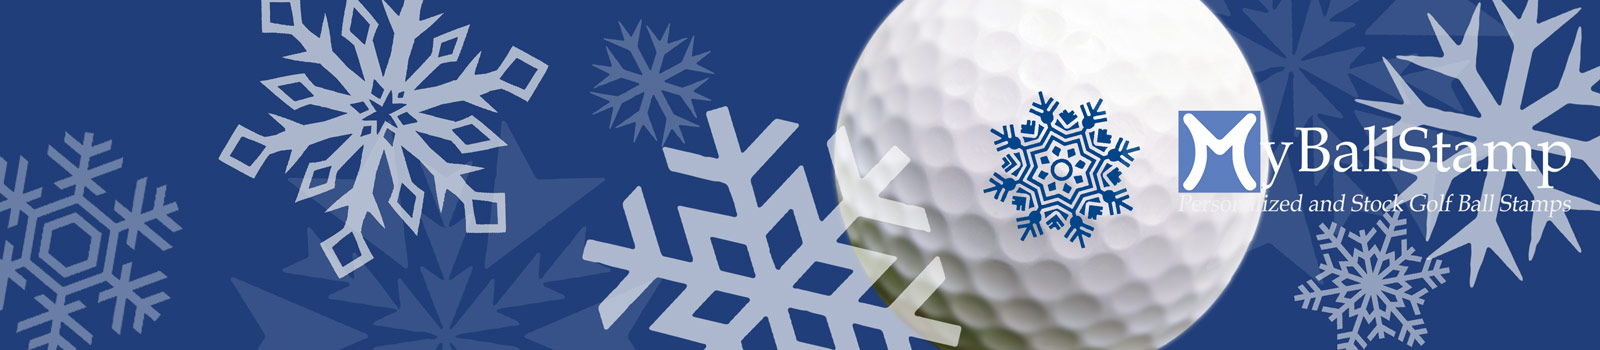 Golf Ball Stamp Background v5